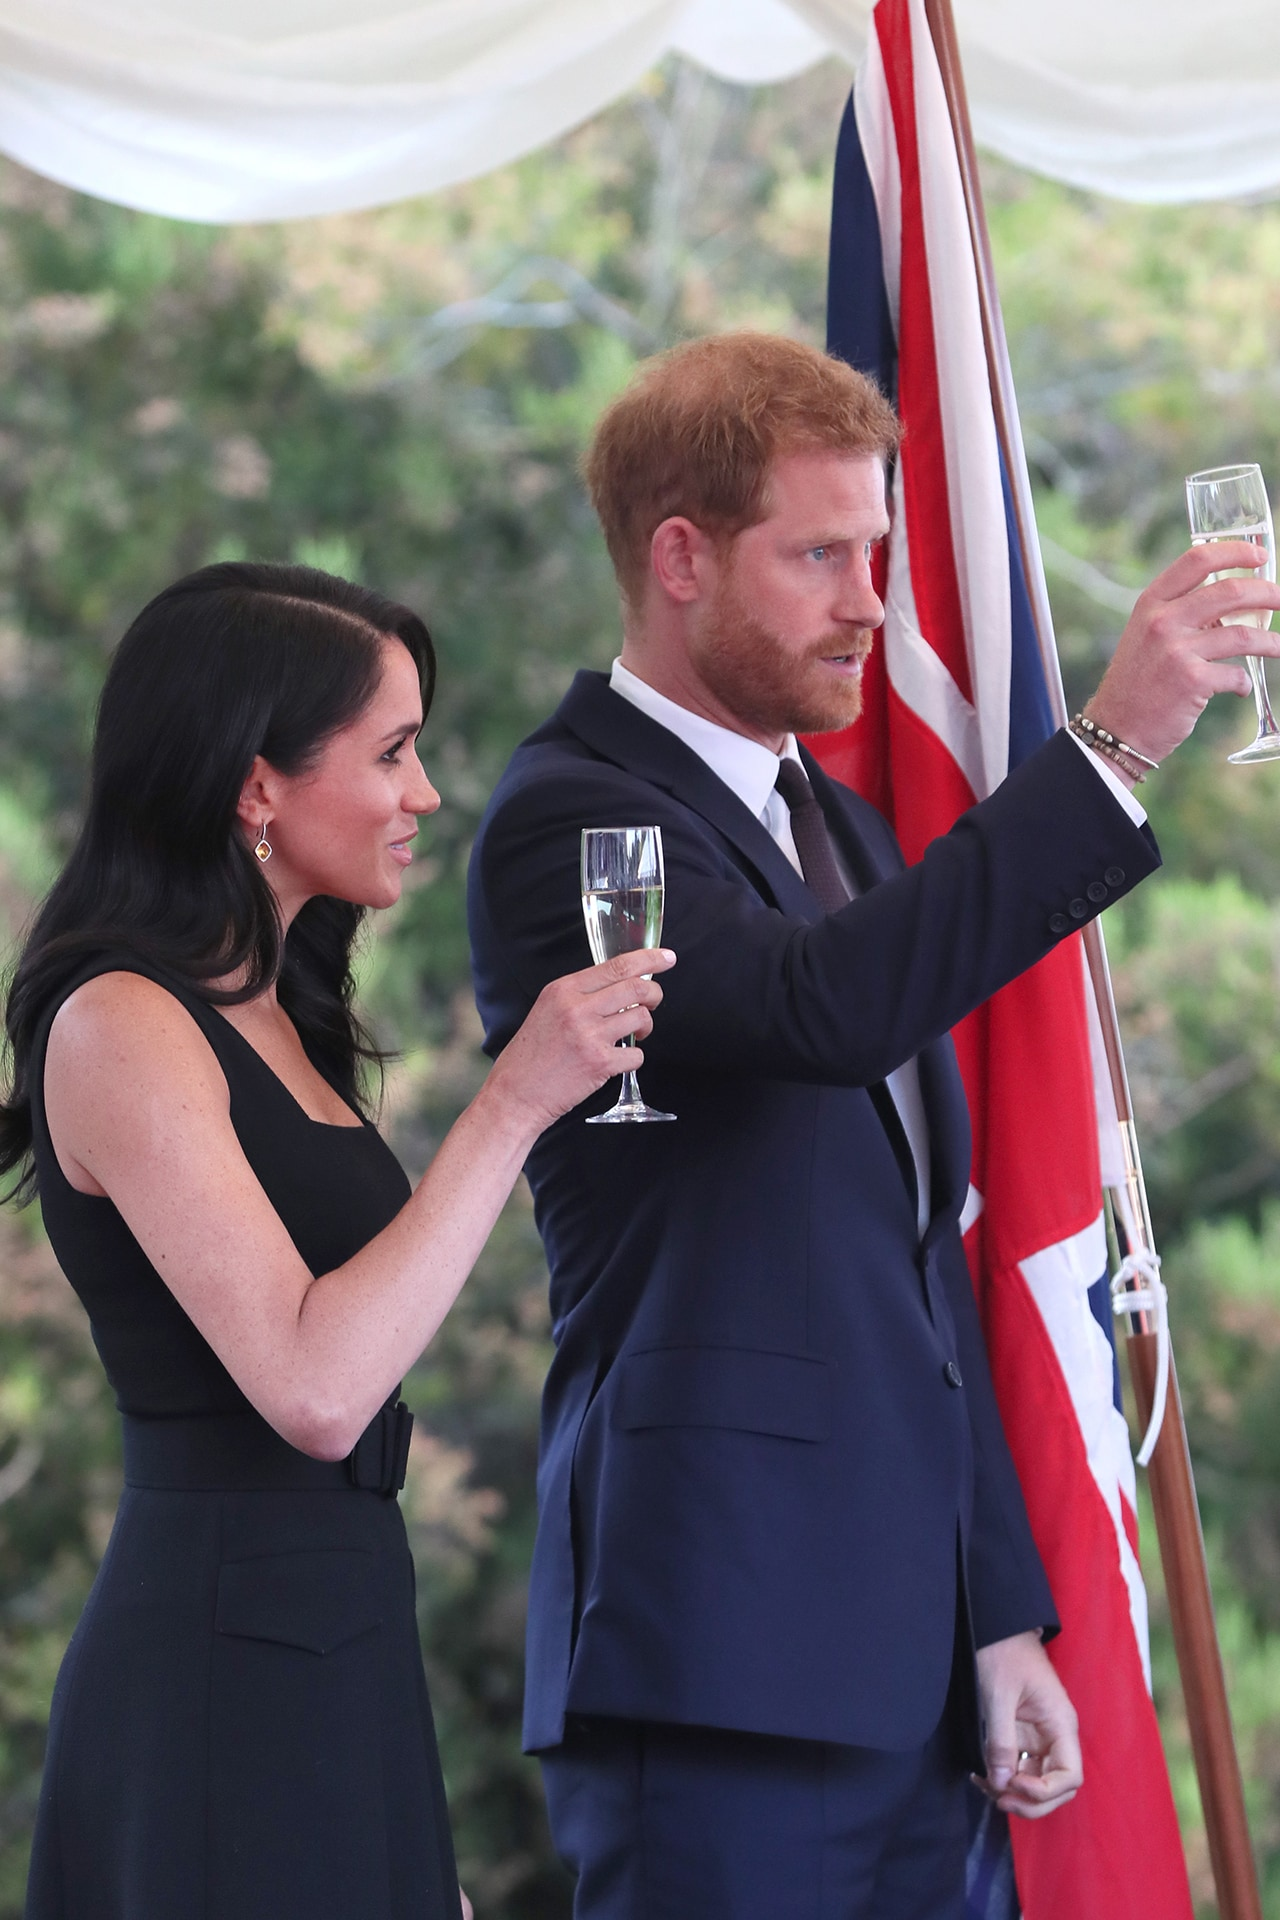 The Duke and Duchess of Sussex at a garden reception in Dublin, Markle wears Emilia Wickstead. Image credit: Getty Images